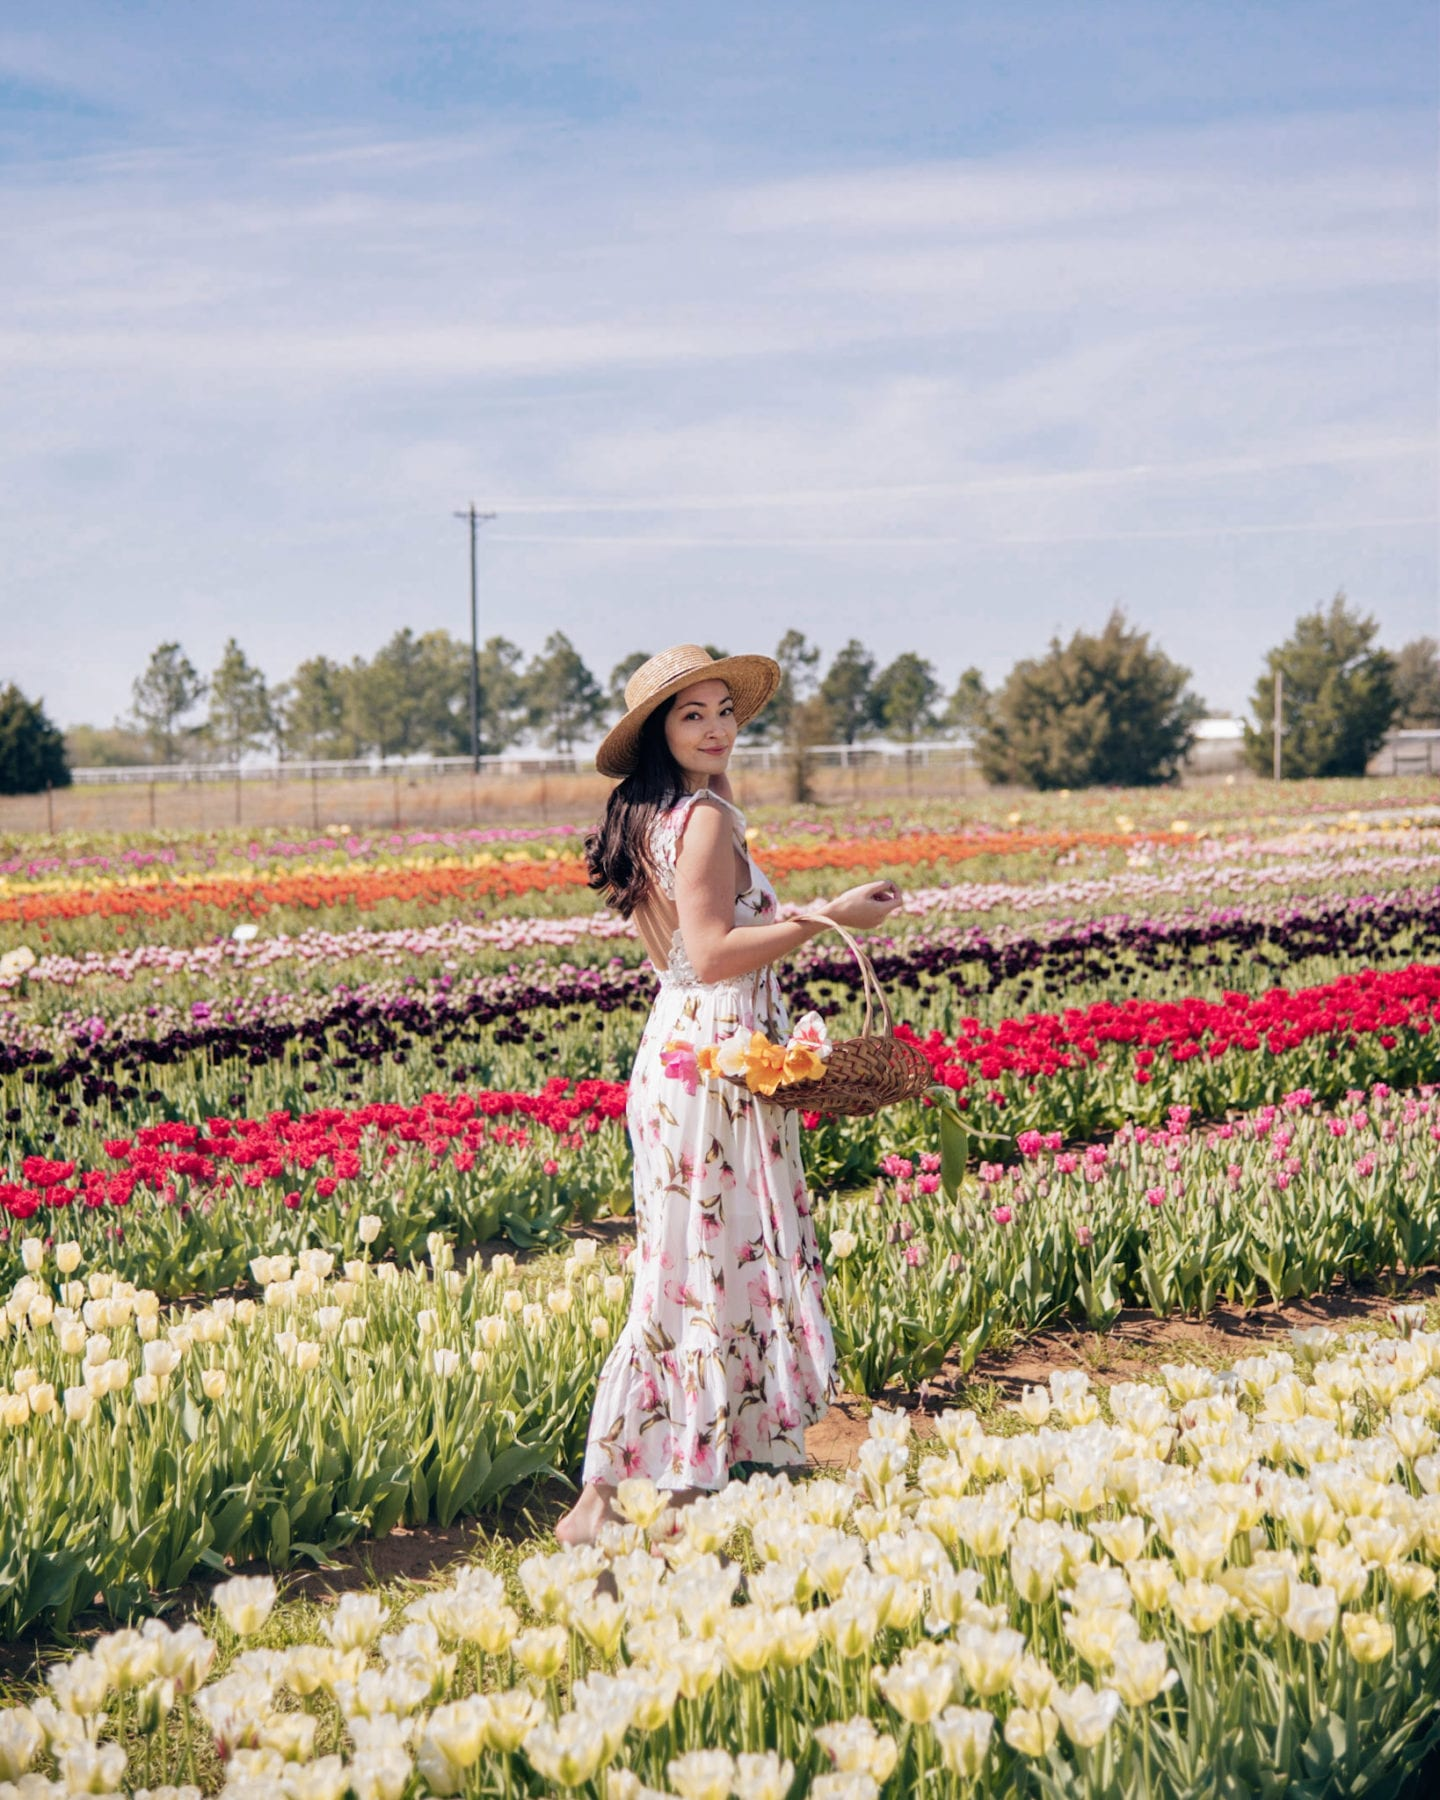 9 Things You'll Find at Texas Tulips in Pilot Point